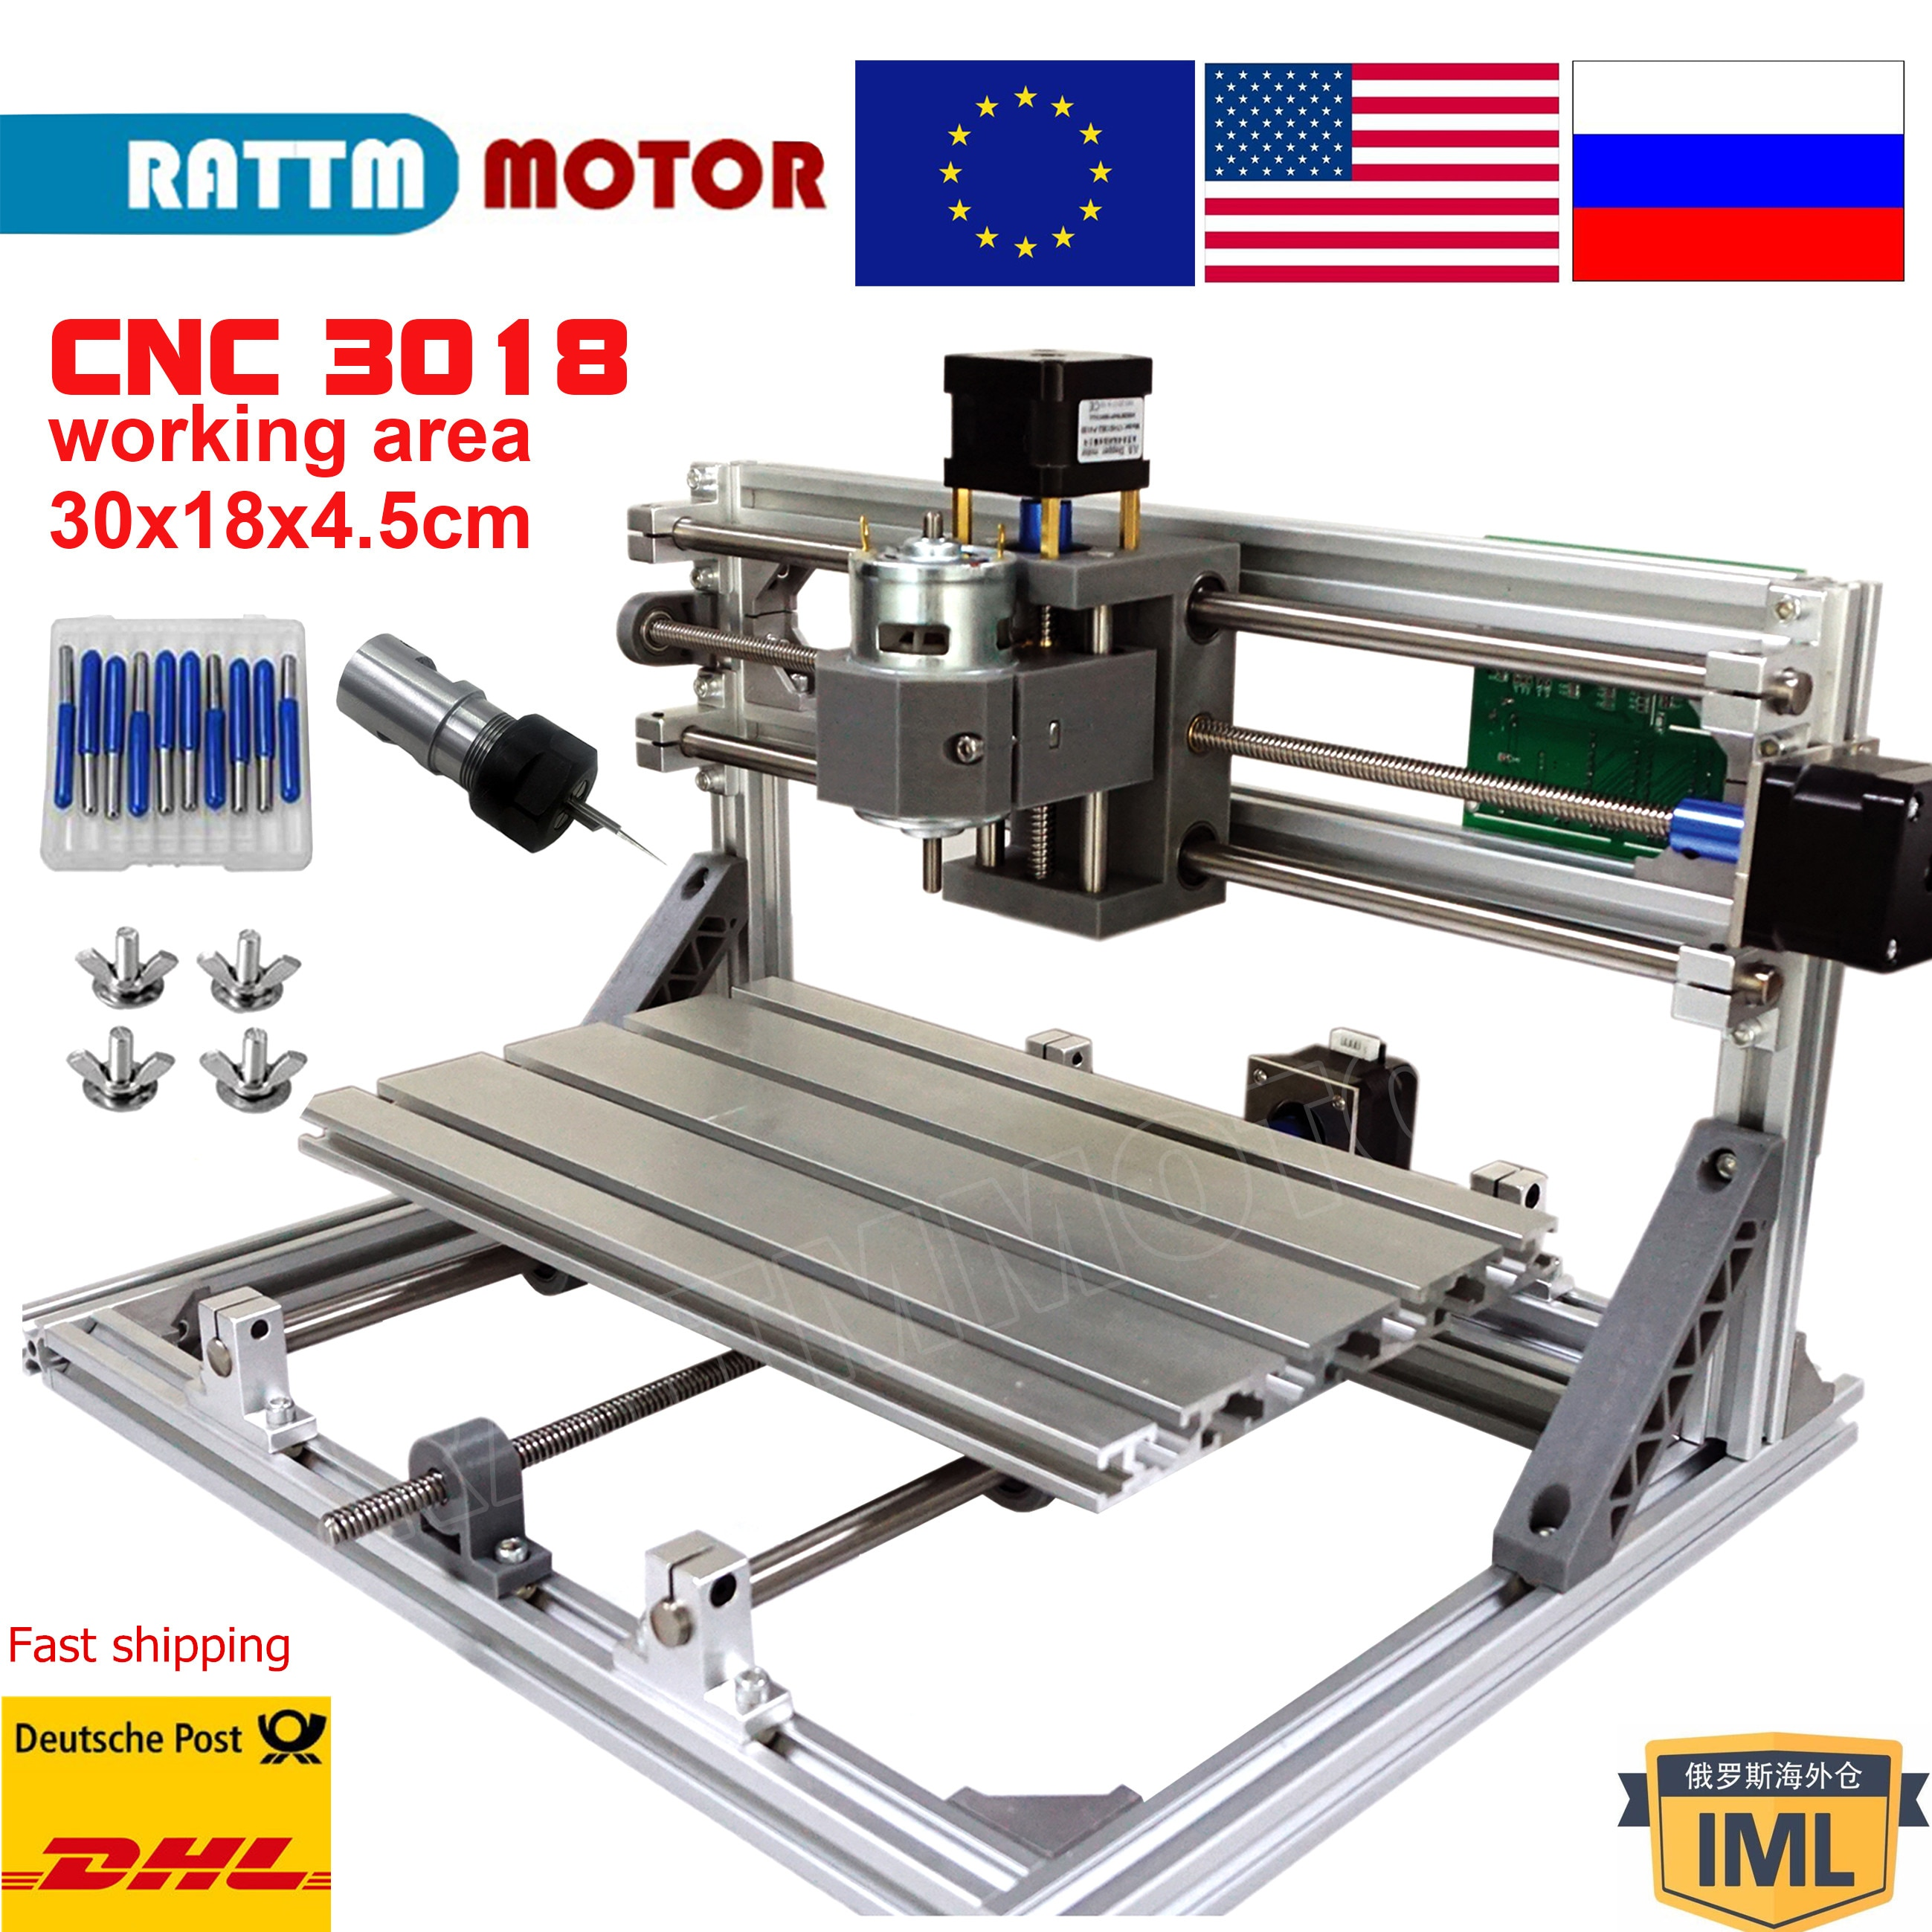 GRBL control CNC  Laser router mini machine 3018 3 Axis Pcb Pvc Woodworking engraving